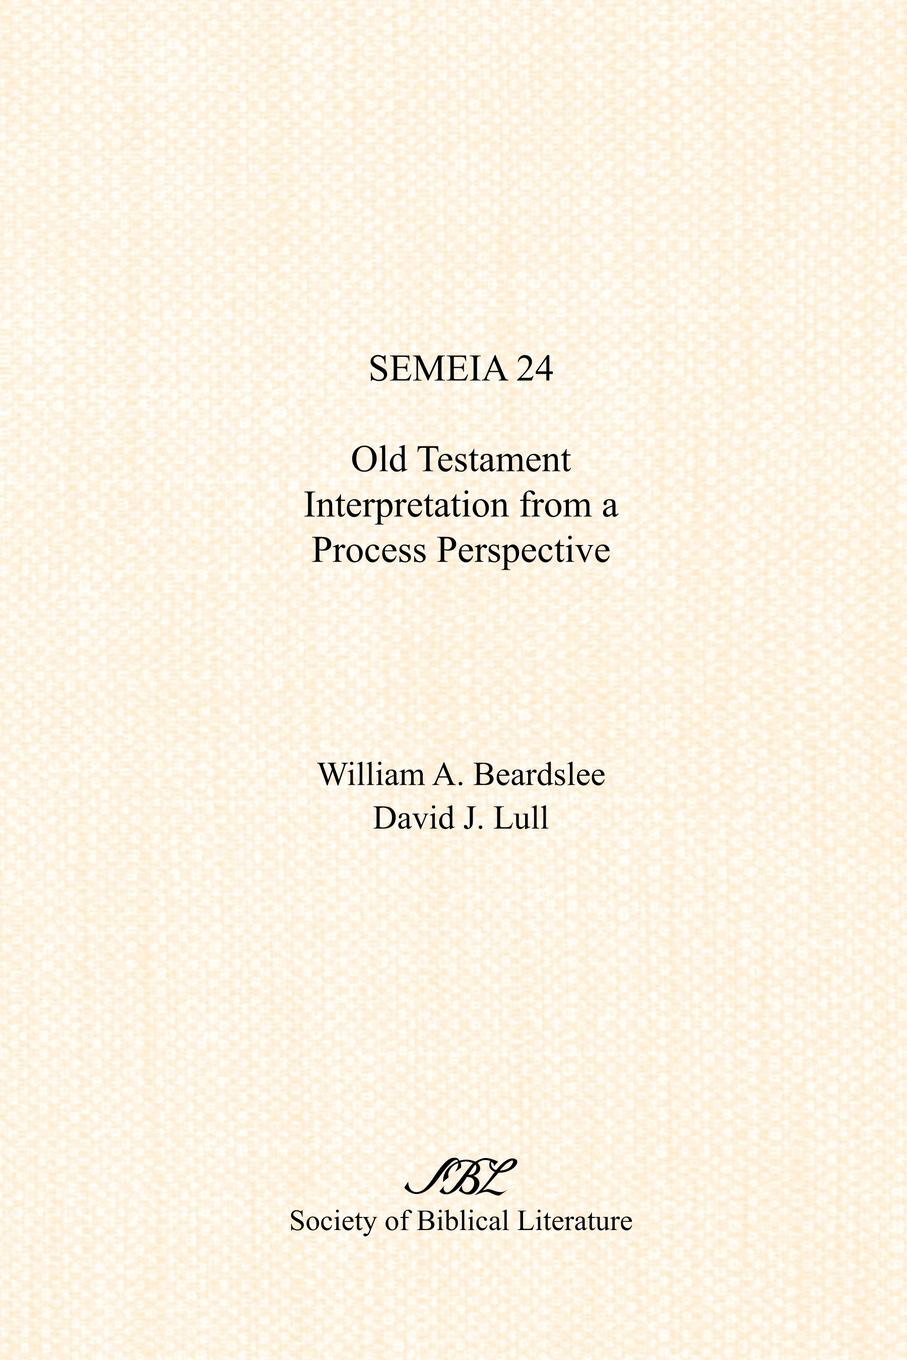 Semeia 24. Old Testament Interpretation from a Process Perspective d w thomas documents from old testament times